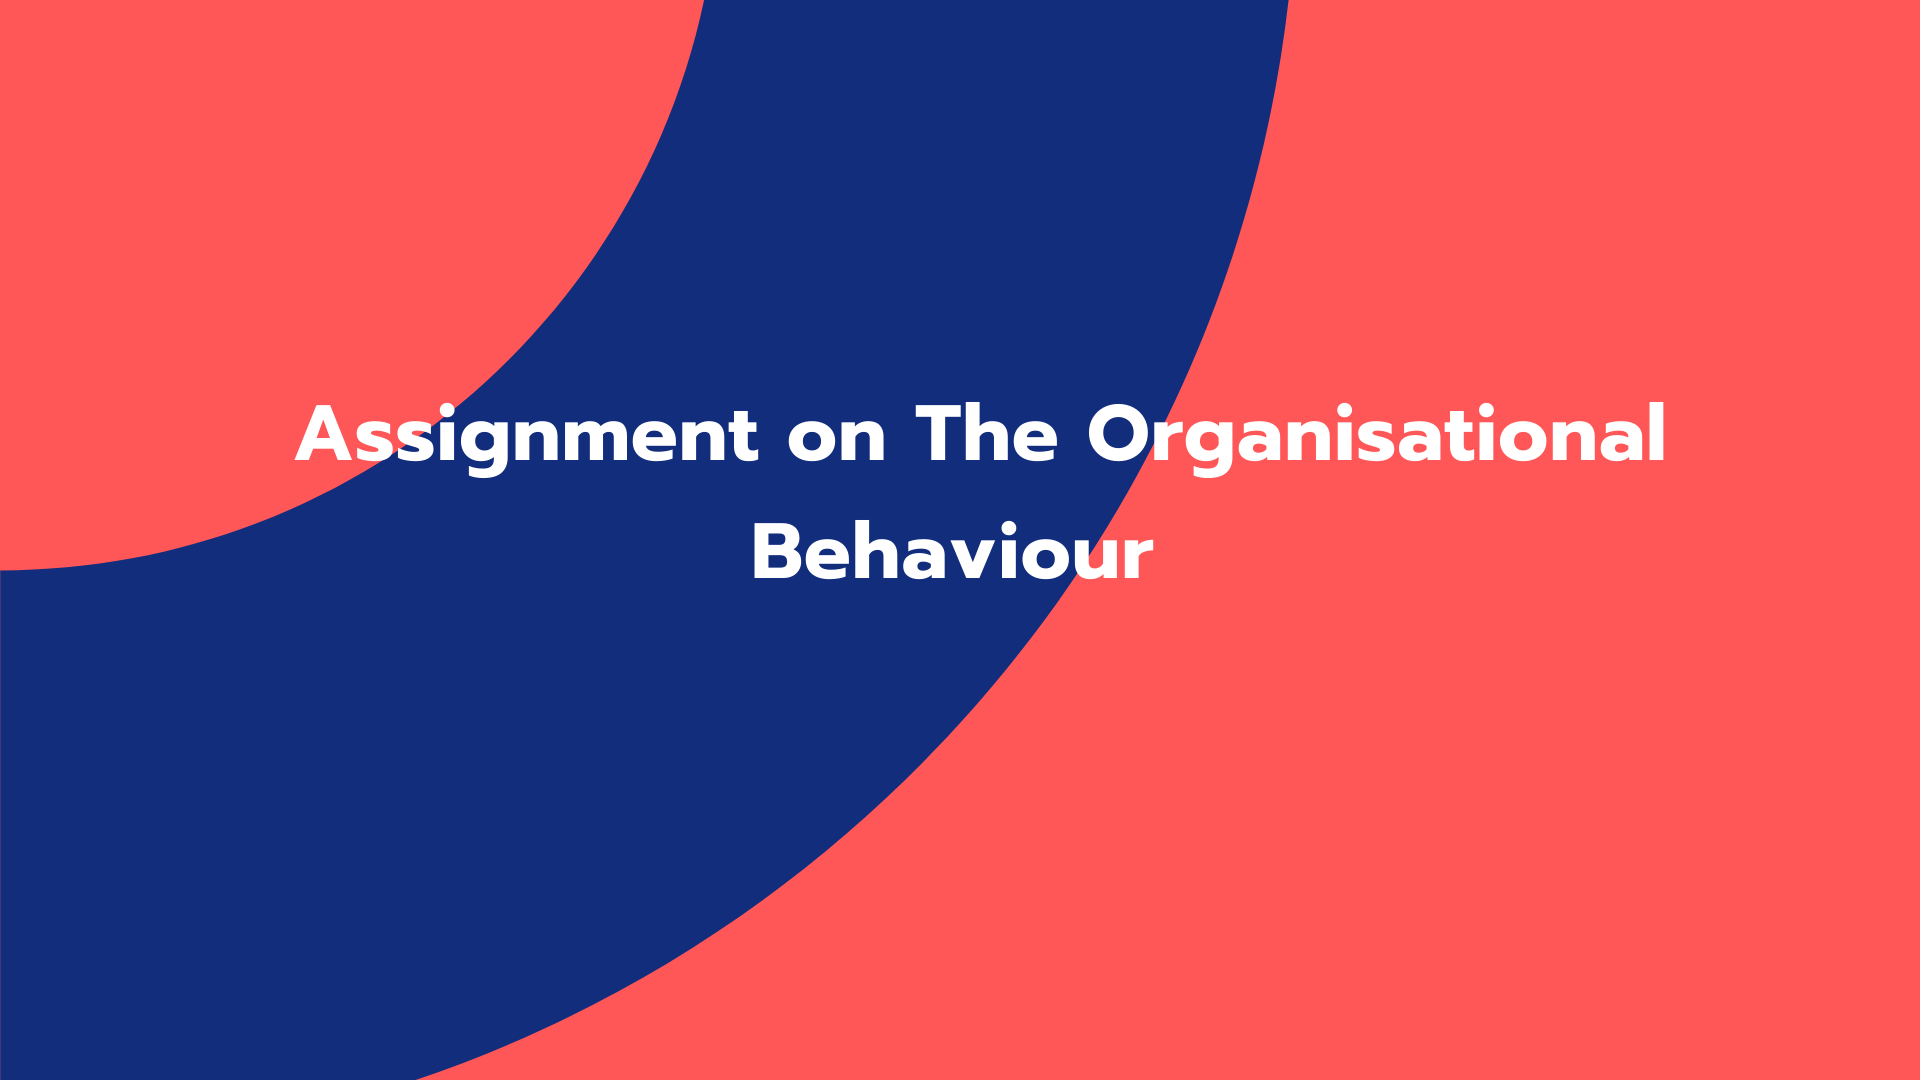 Assignment on The Organisational Behaviour